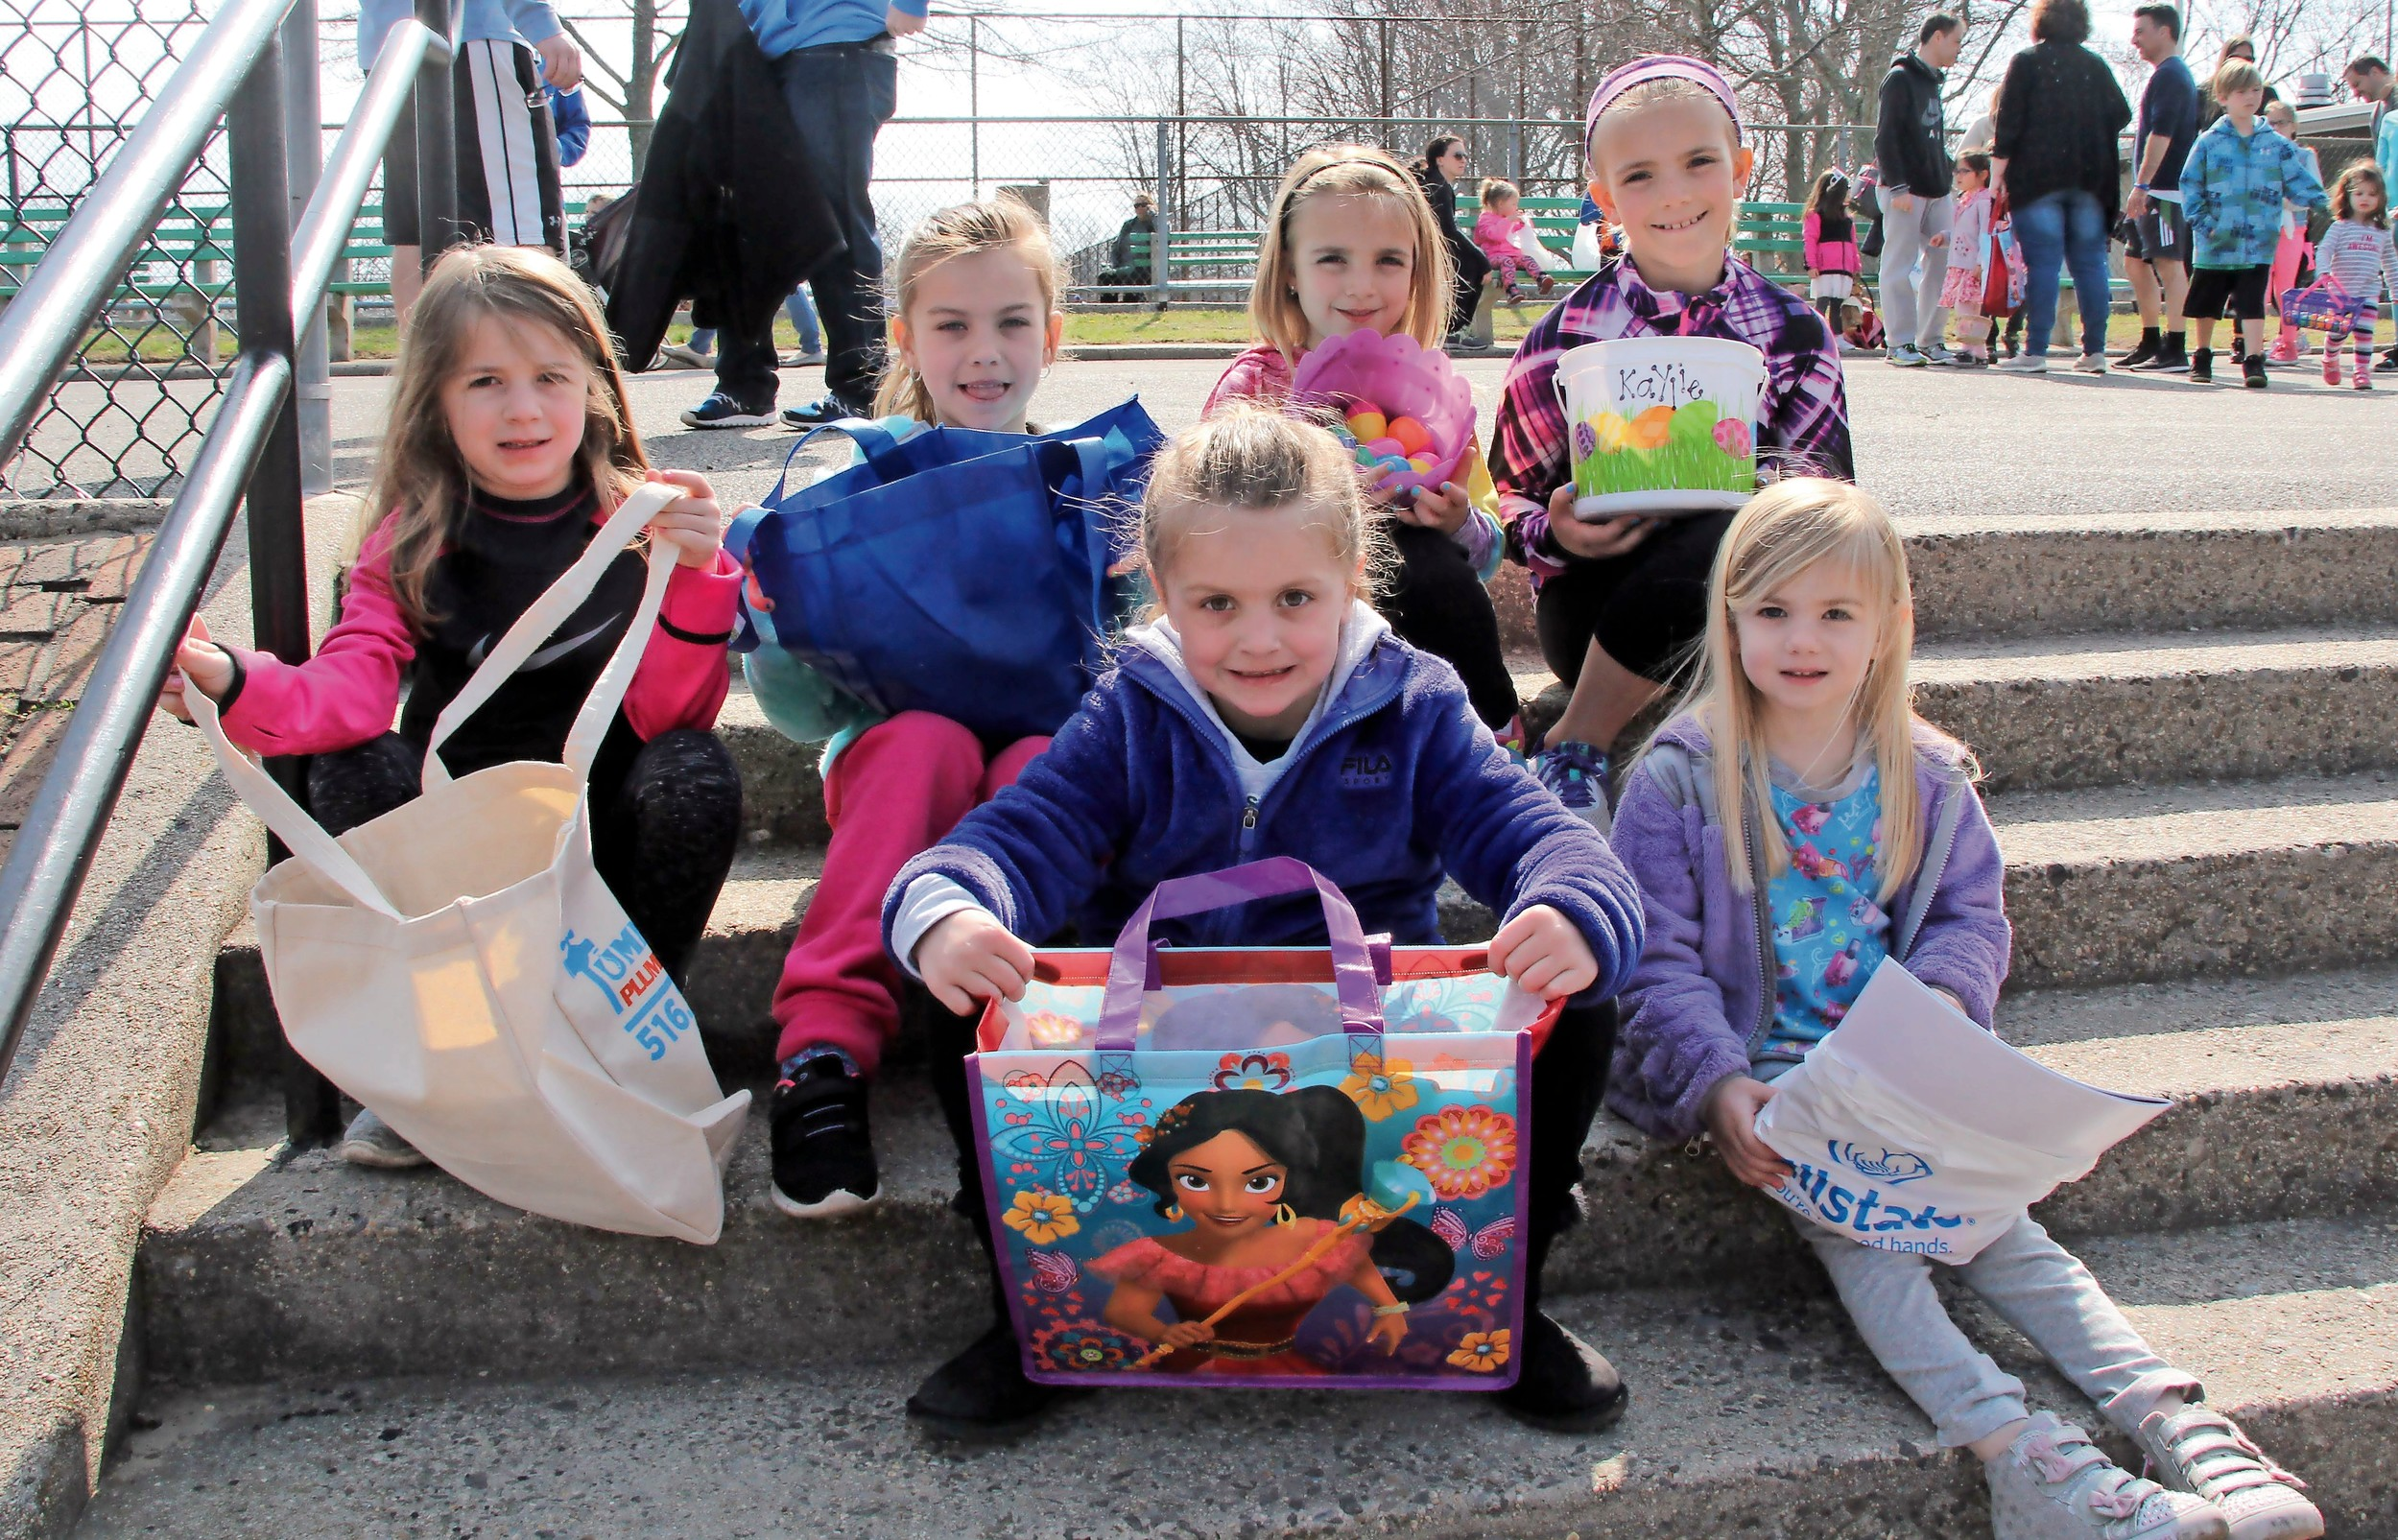 Dozens of children filled baskets with treats last Saturday at the Seaford Chamber of Commerce Easter Egg Hunt at Seamans Neck Park. Clockwise from left were Charlotte Barodin, Bella Doering, Leah and Kaylie Conklin, Charley Dowering and Rosalie Barodin.